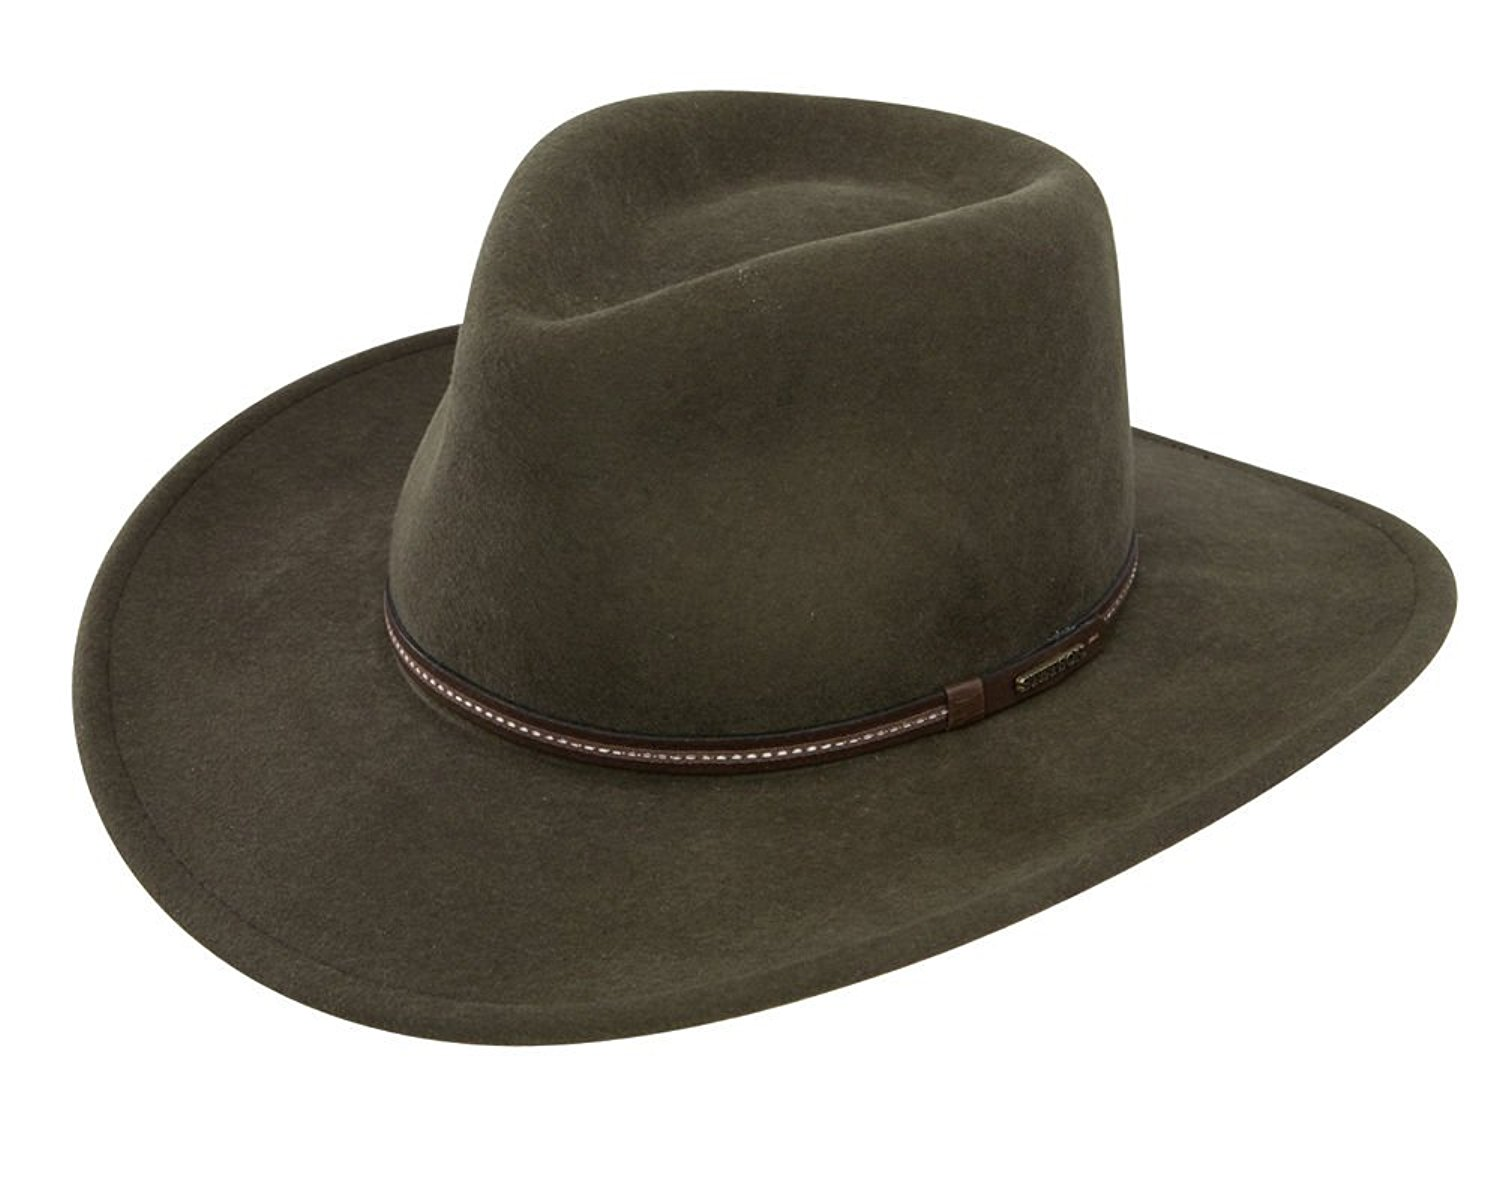 Get Quotations · Stetson Gallatin Crushable Wool Felt Hat - Sage - 2XL bd305d75cdf8